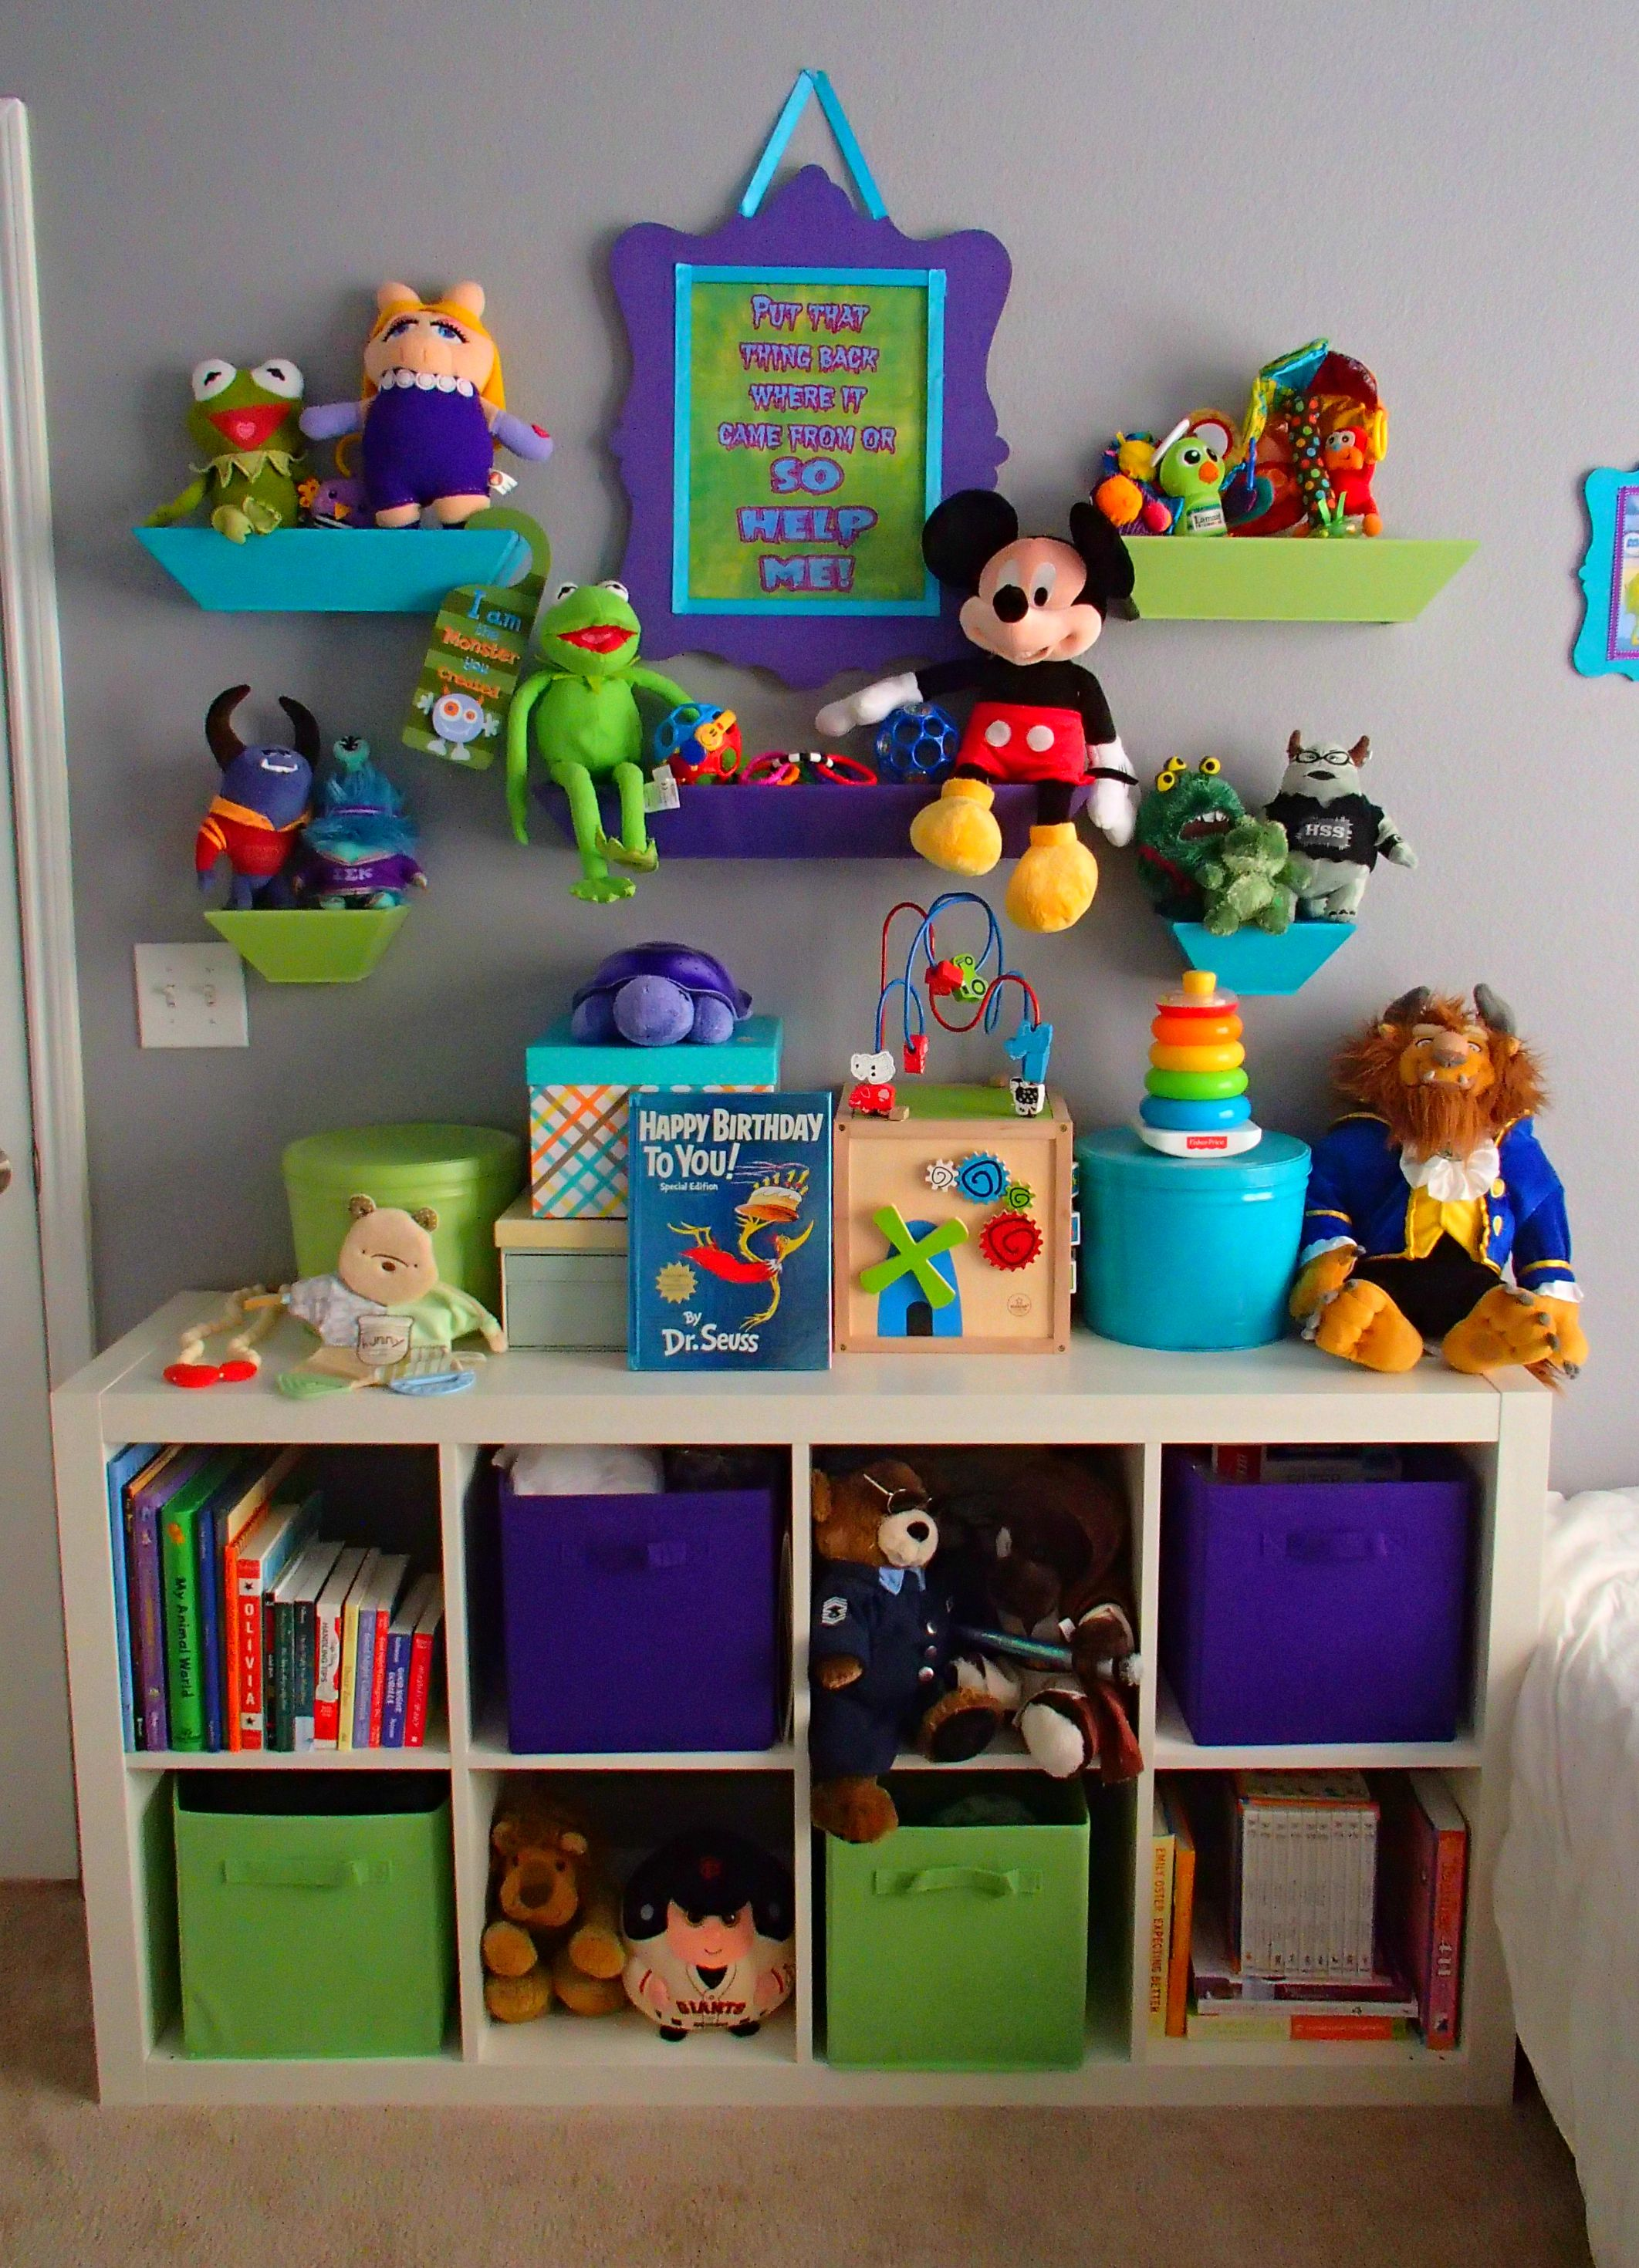 Toy Story Bedroom Ideas] Table Lamps Amazon For Bedroom Tall ...